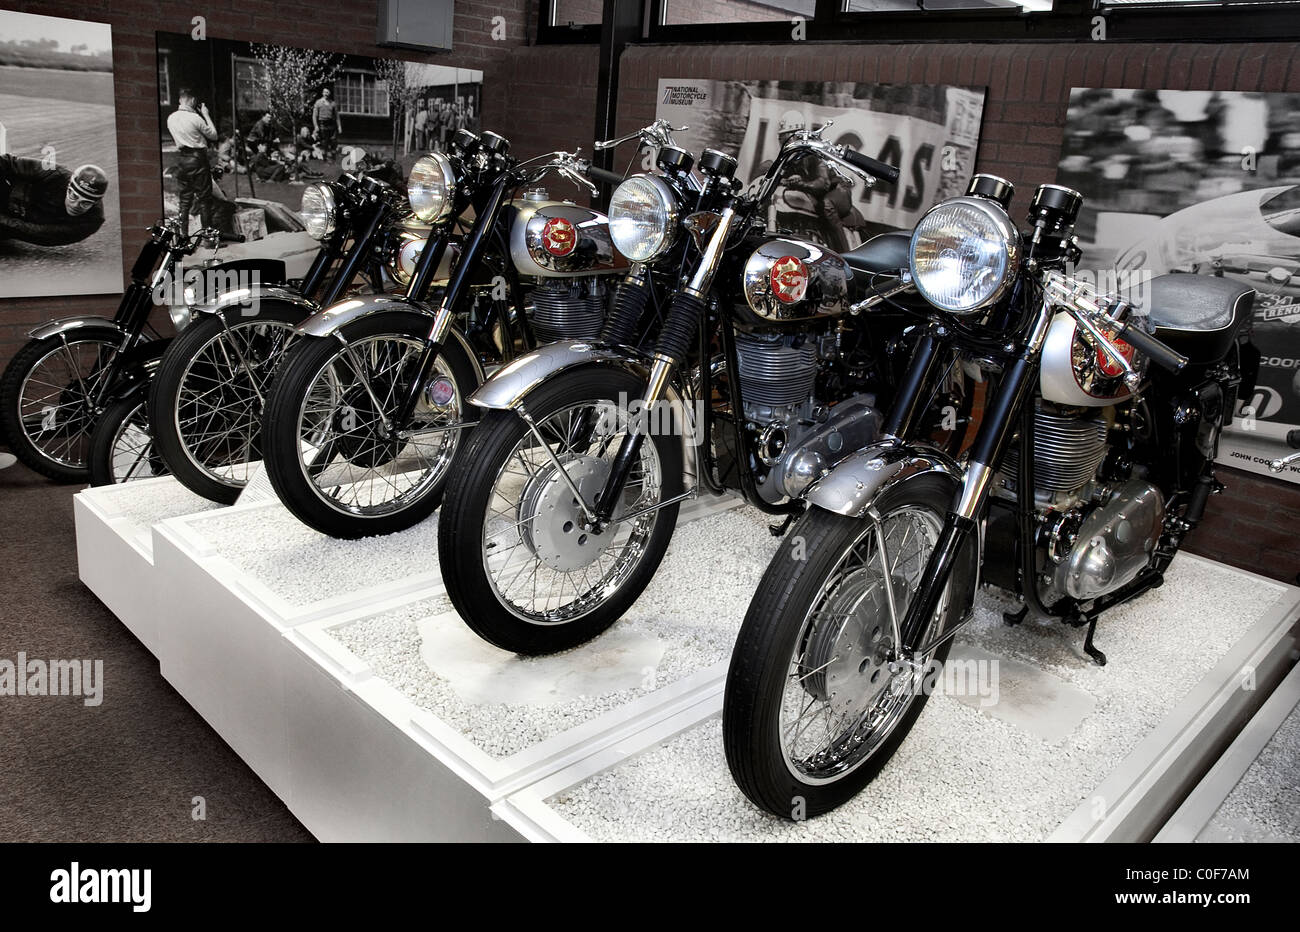 National Motorcycle Museum >> Bsa Gold Star Motocrycles At The National Motorcycle Museum Stock